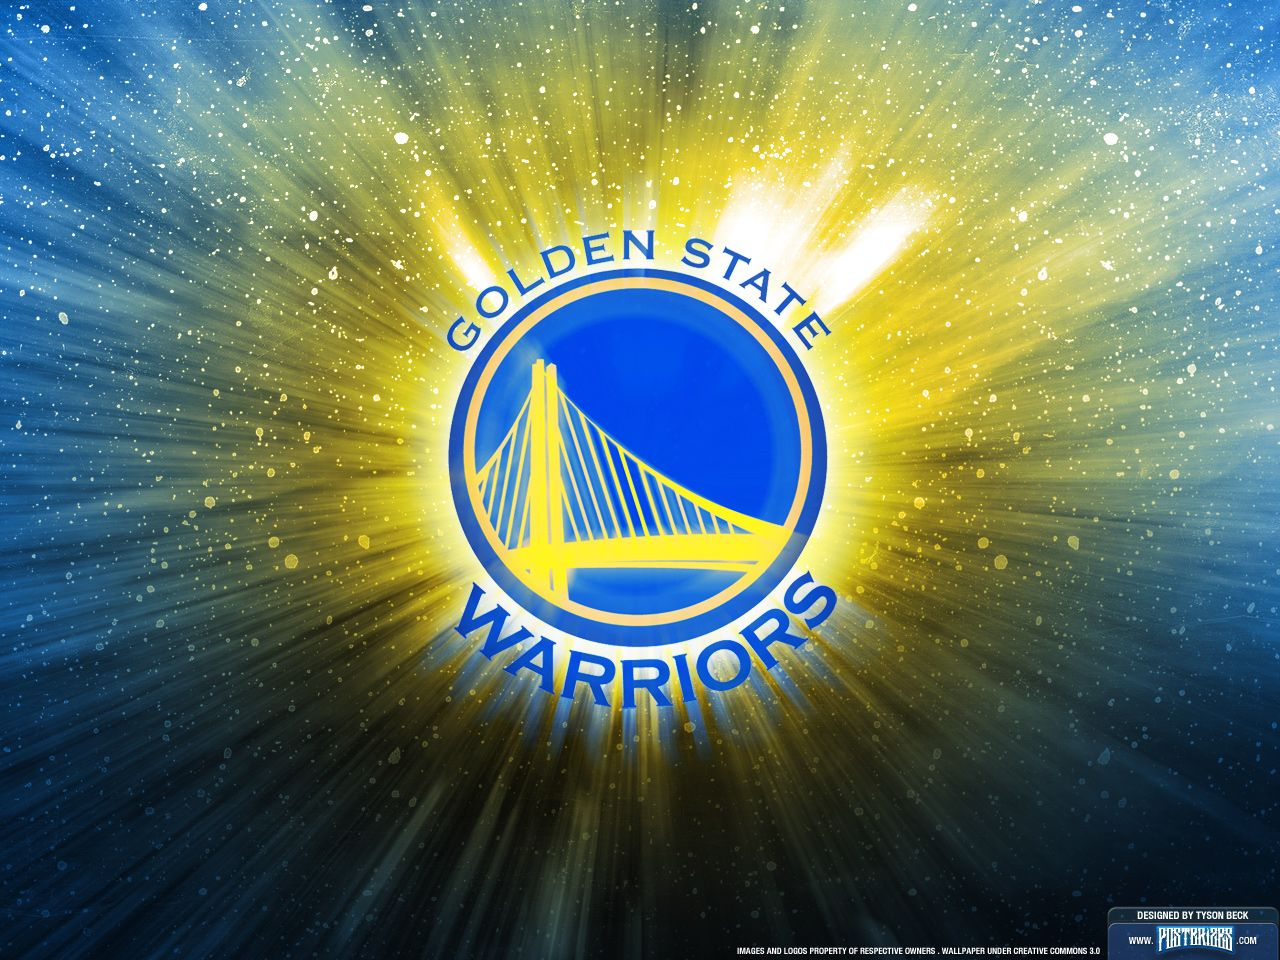 Golden State Warriors Logo Wallpaper Golden State Warriors Wallpaper Golden State Warriors Logo Warrior Logo